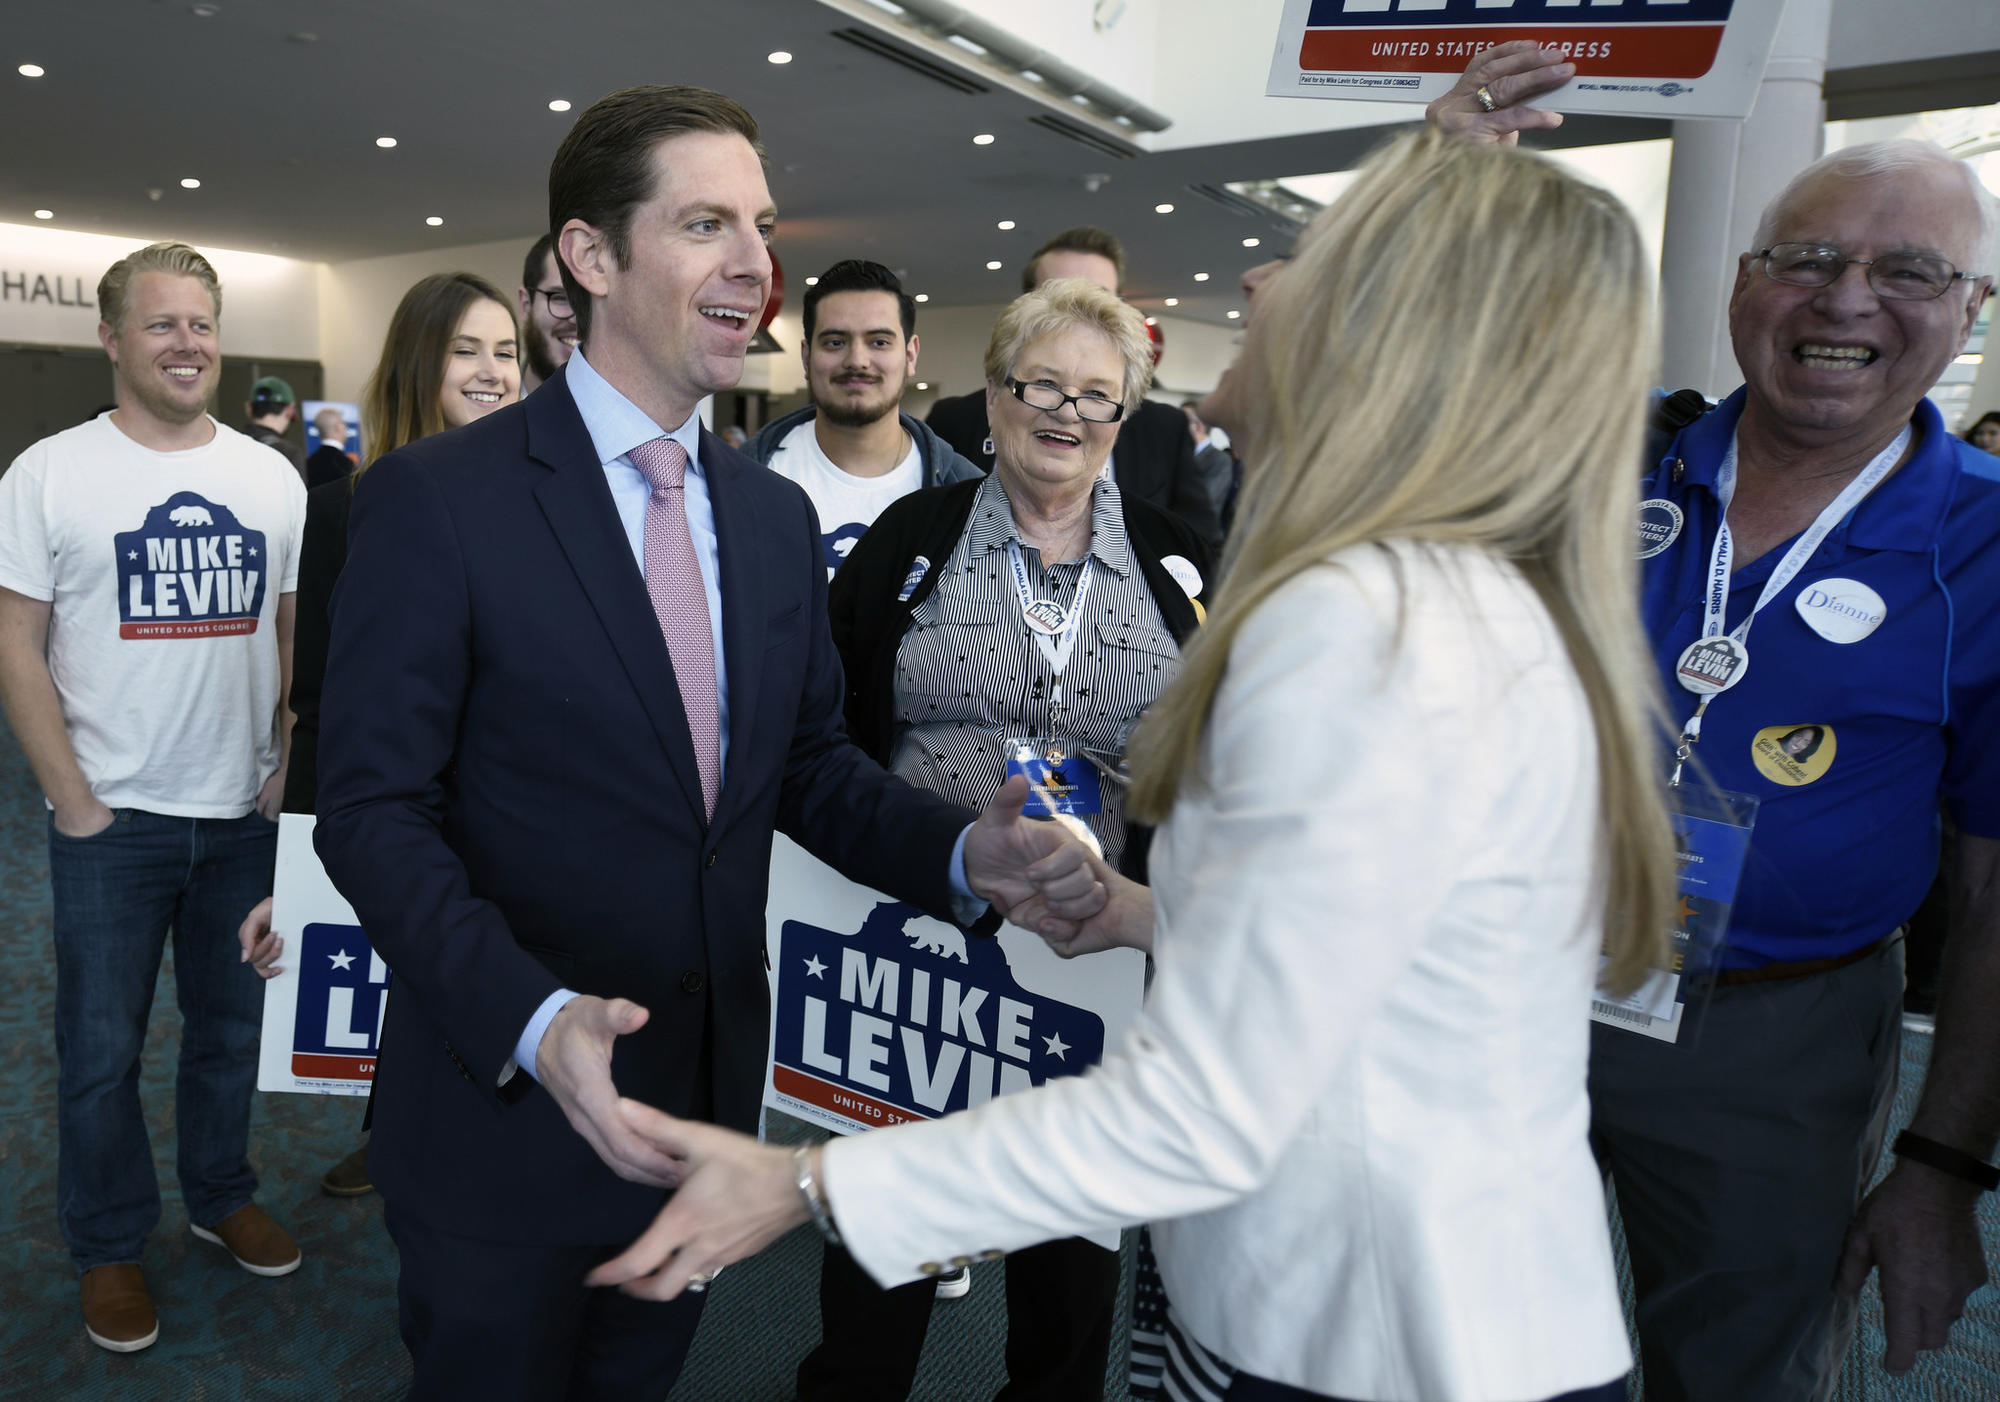 Mike Levin, Chrissy Levin